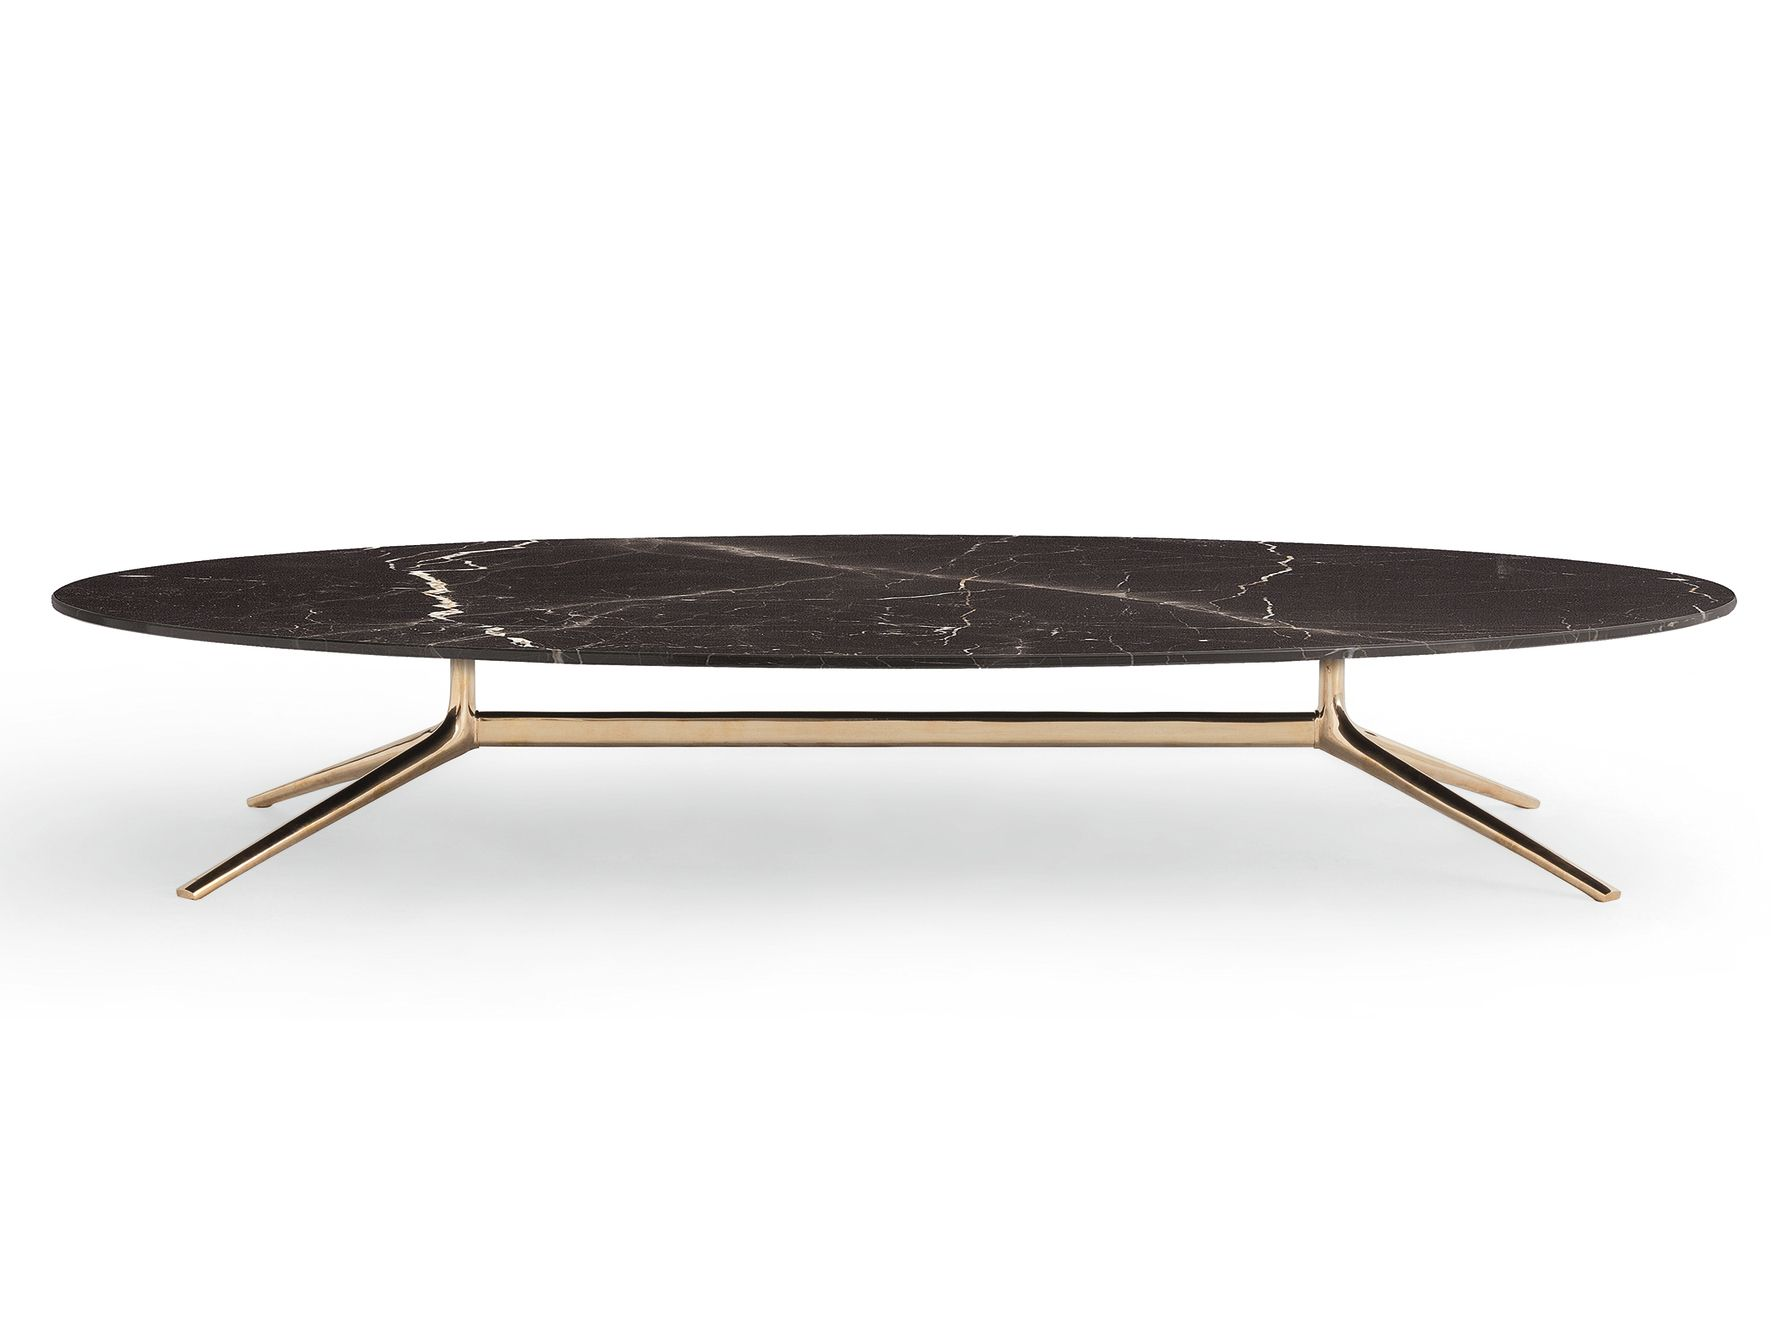 Unique De Table Basse Ovoide